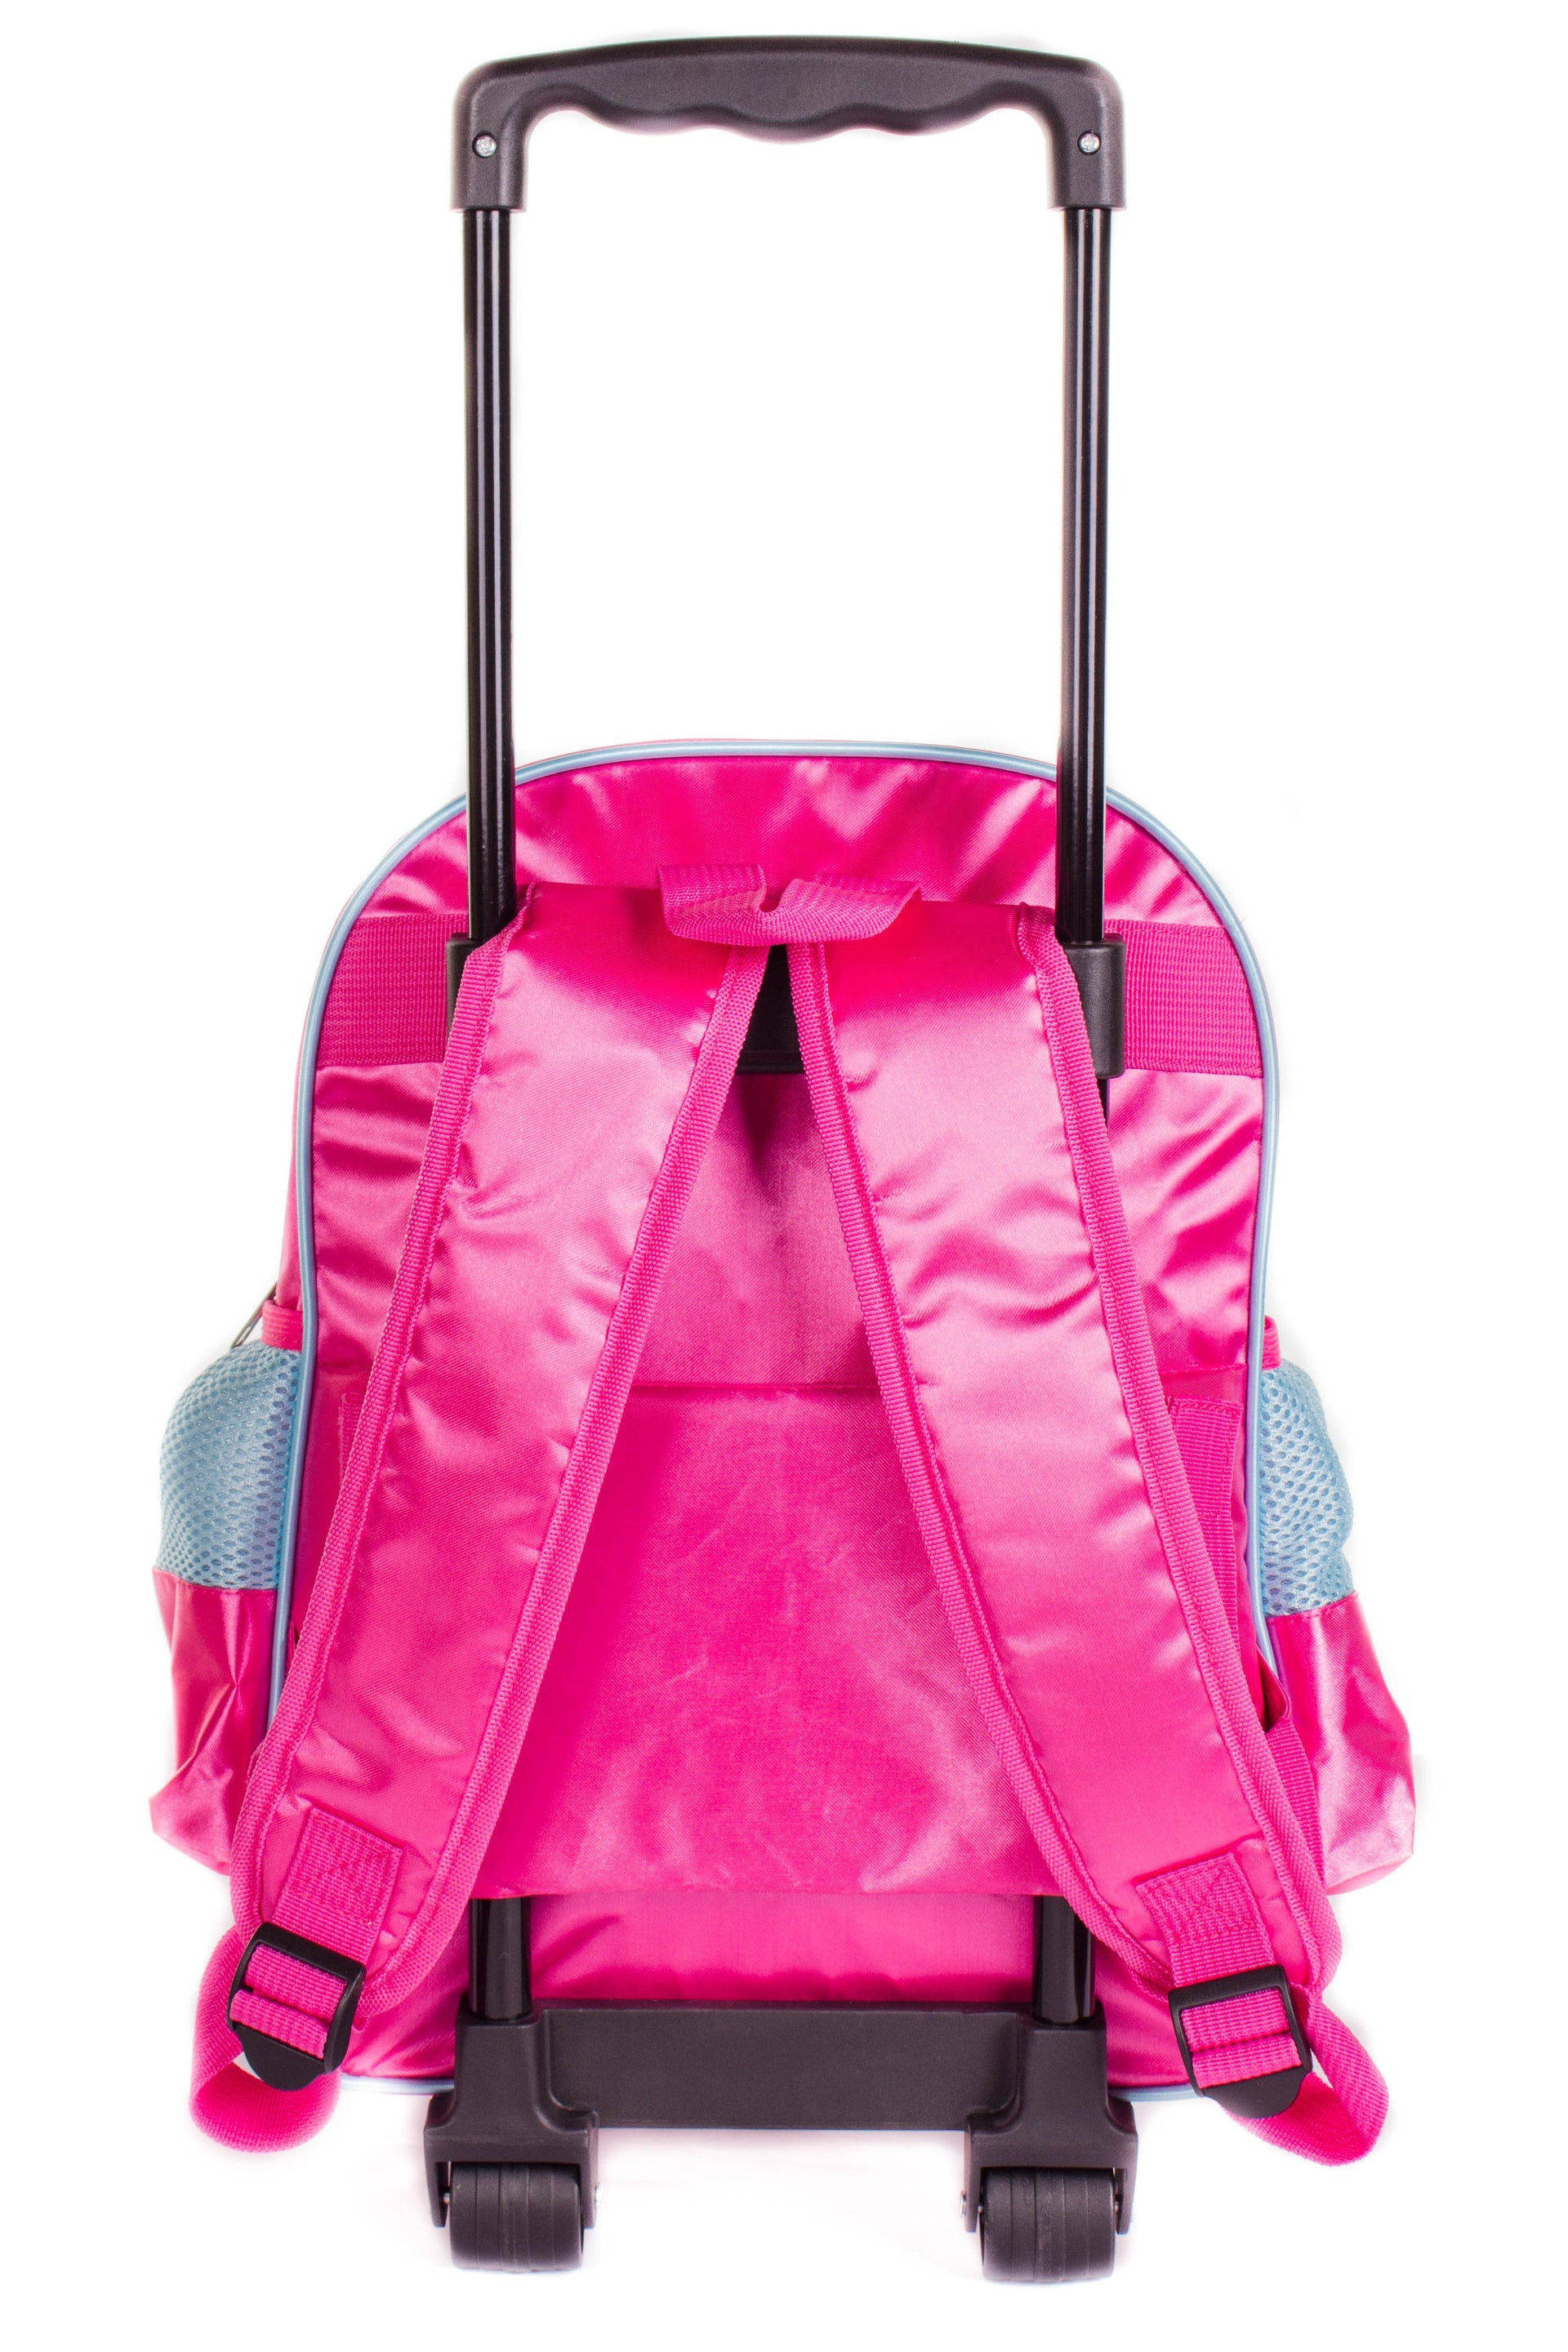 3 Piece Sunshine School Trolley Bag Set - Bounce Essential Hair